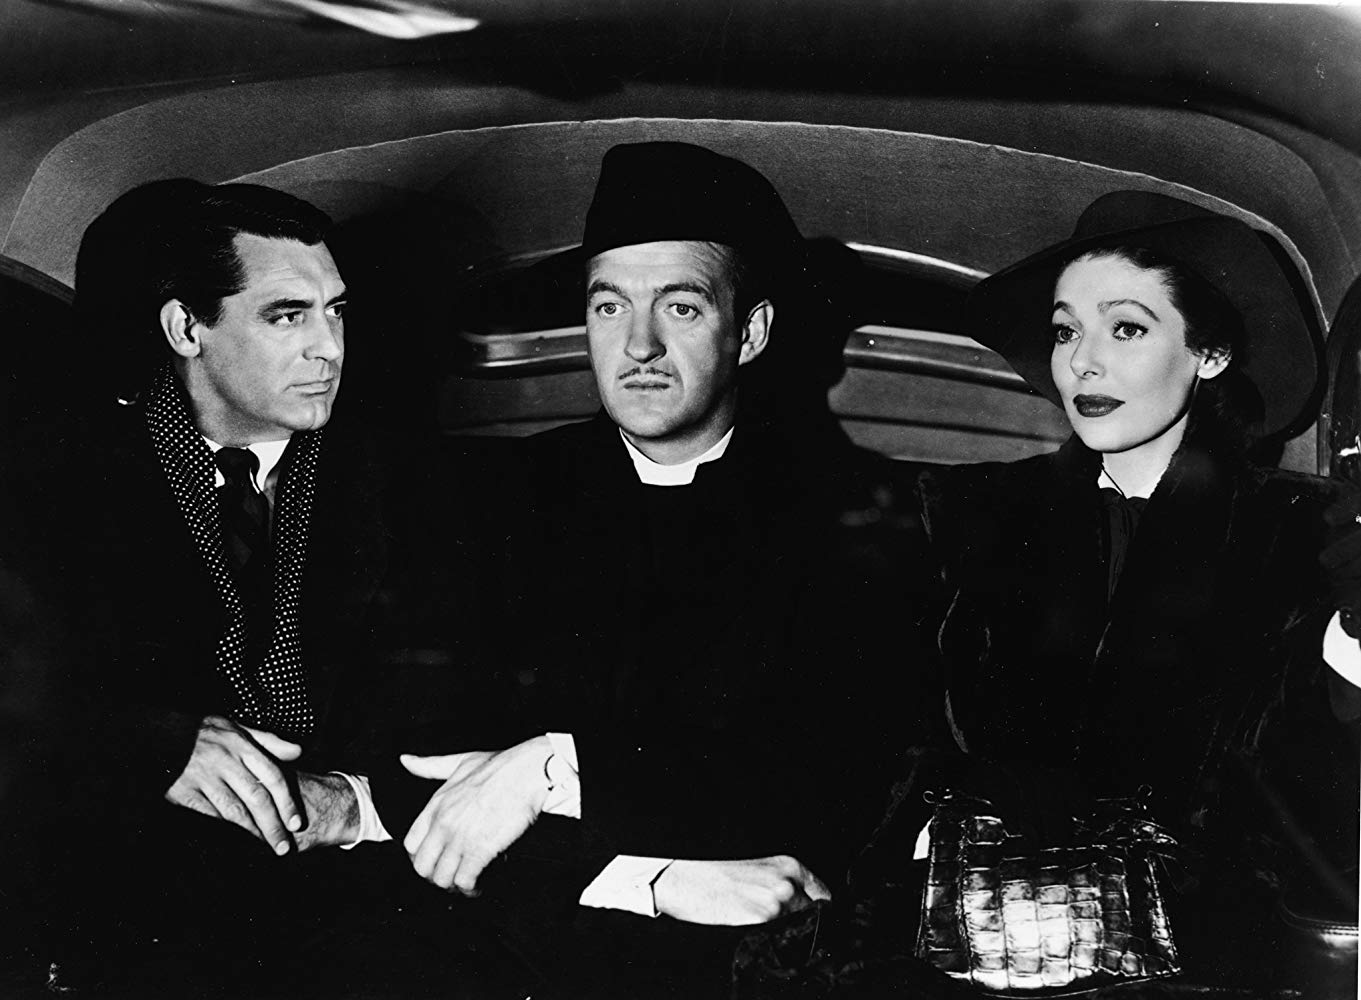 (l to r0 The angel Dudley (Cary Grant), bishop David Niven and the bishop's wife Loretta Young in The Bishop's Wife (1947)